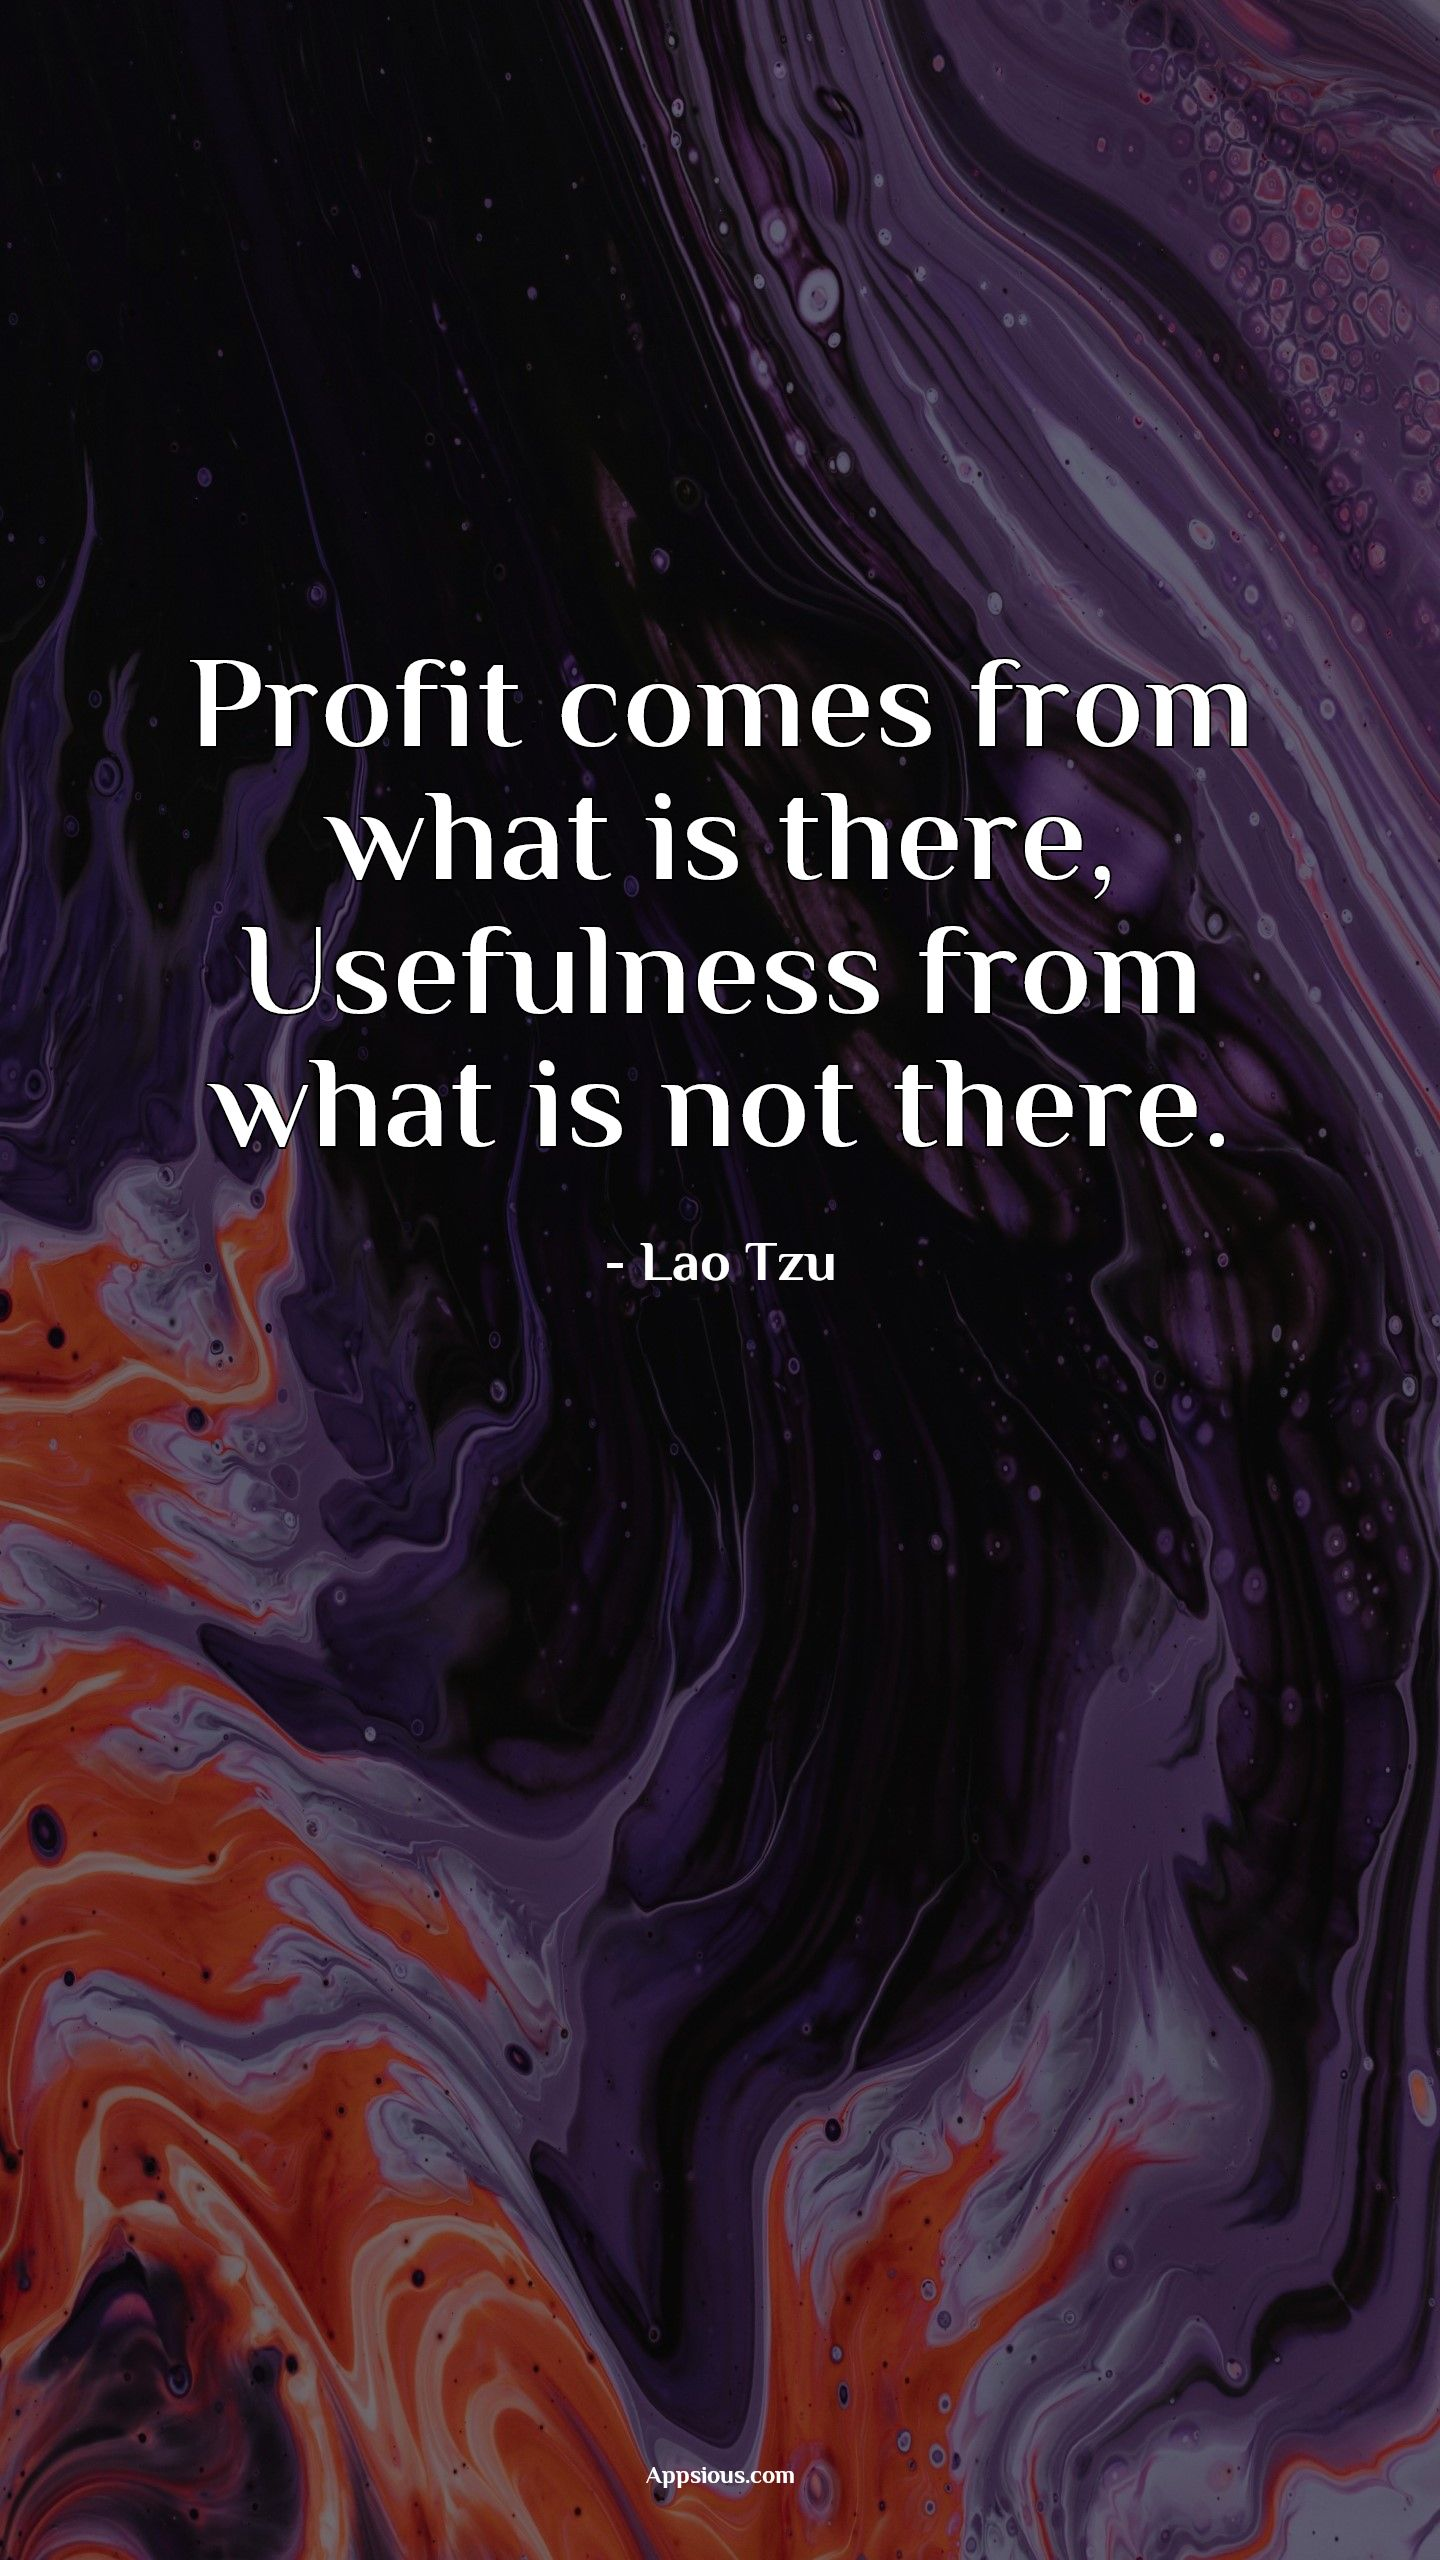 Profit comes from what is there, Usefulness from what is not there.